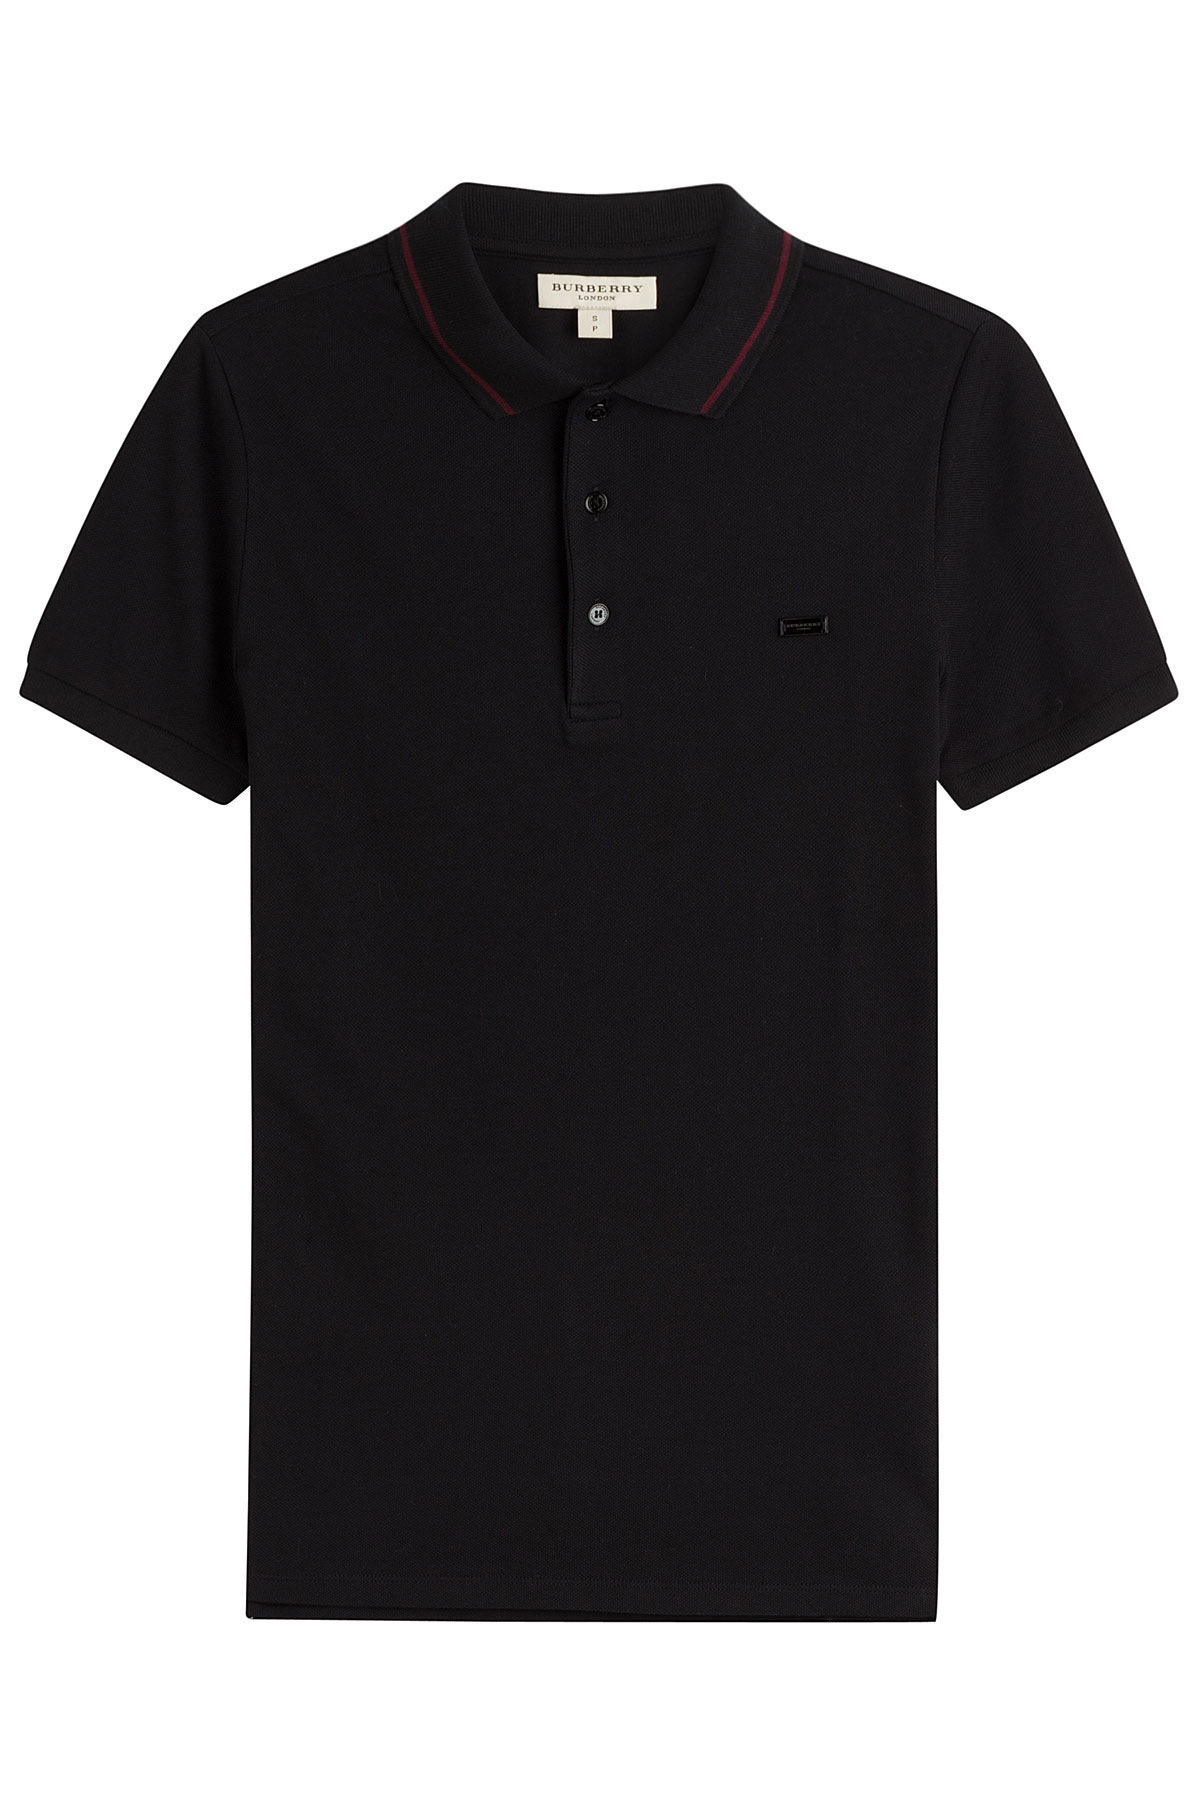 Polo Shirts. Many high quality polo shirts at wholesale prices are available from Blank Apparel. Polo shirts have a great look and feel and became popular within .